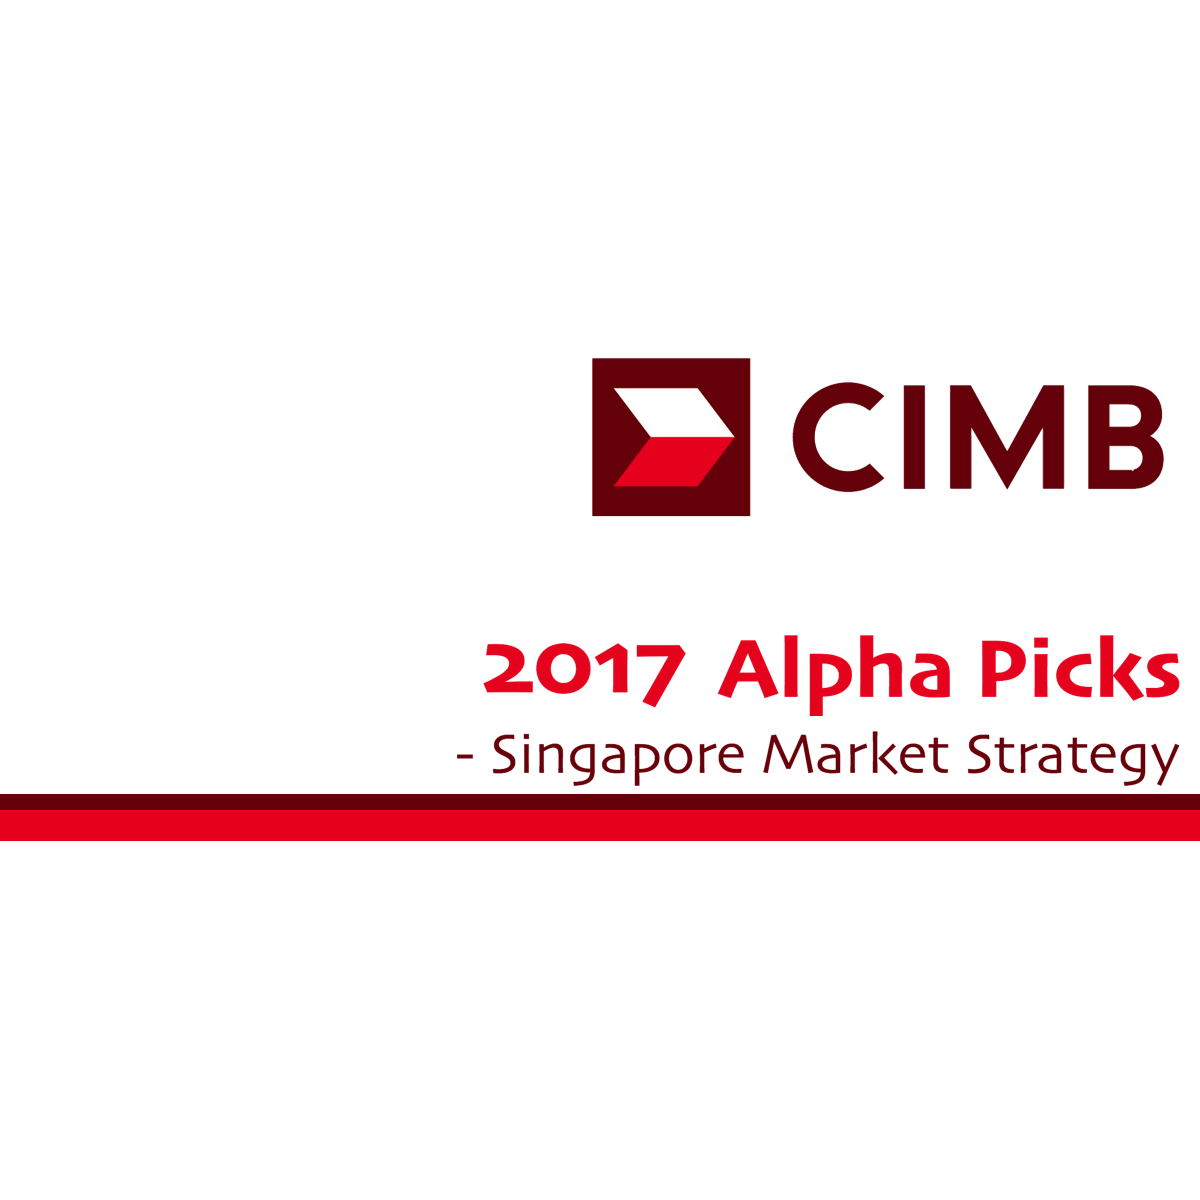 Singapore Alpha Picks 2017 - CIMB Research 2017-05-30: Analysts' Alpha Picks (Small Caps)